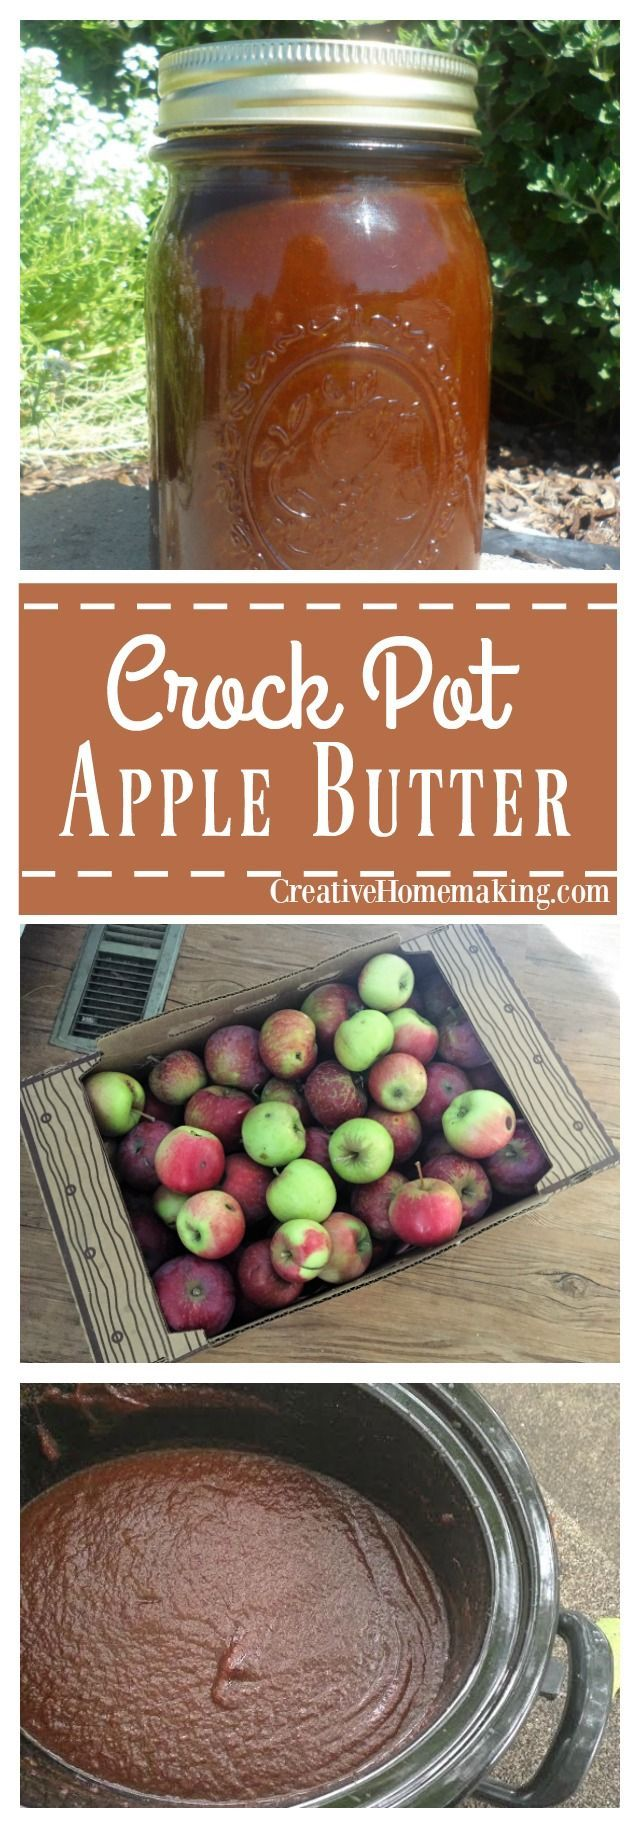 Easy recipe for apple butter made in your crock pot. Can it or freeze it for later.